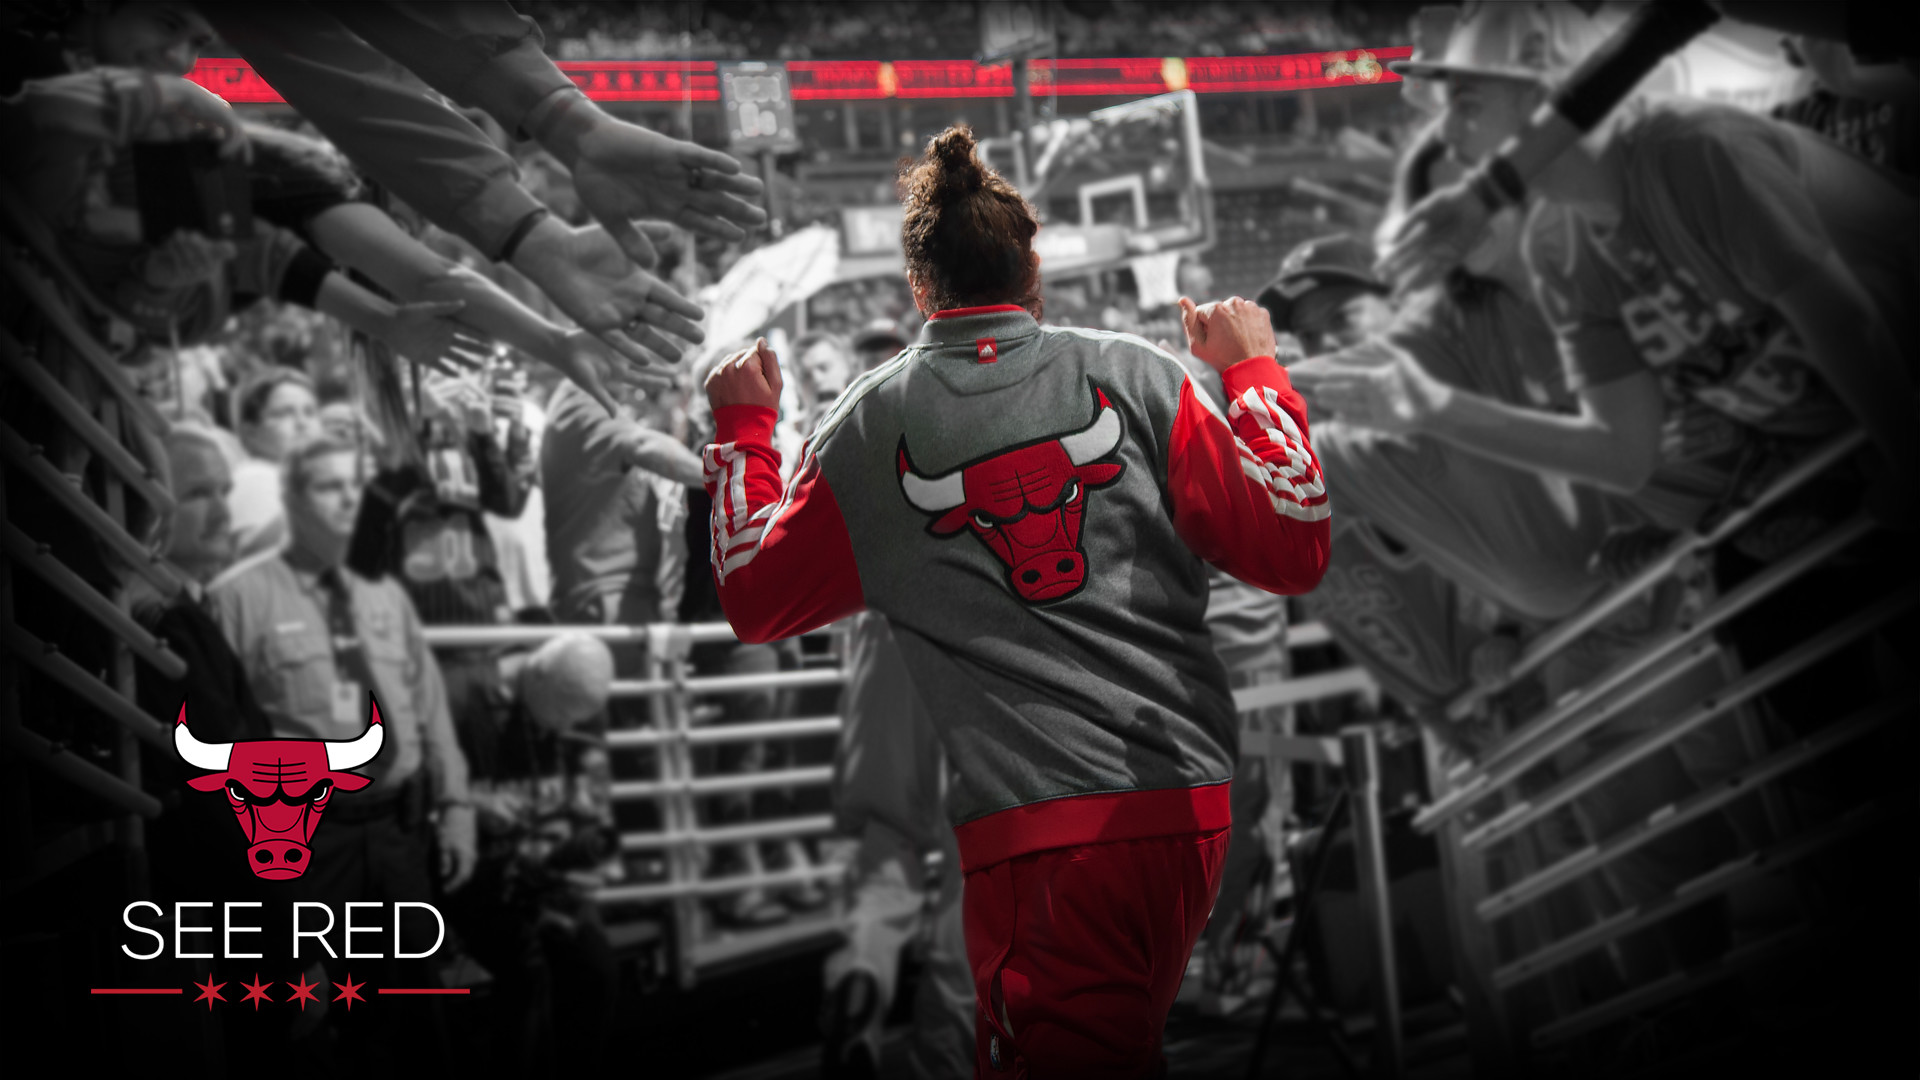 Chicago Bulls Wallpaper Hd 2018 67 Images